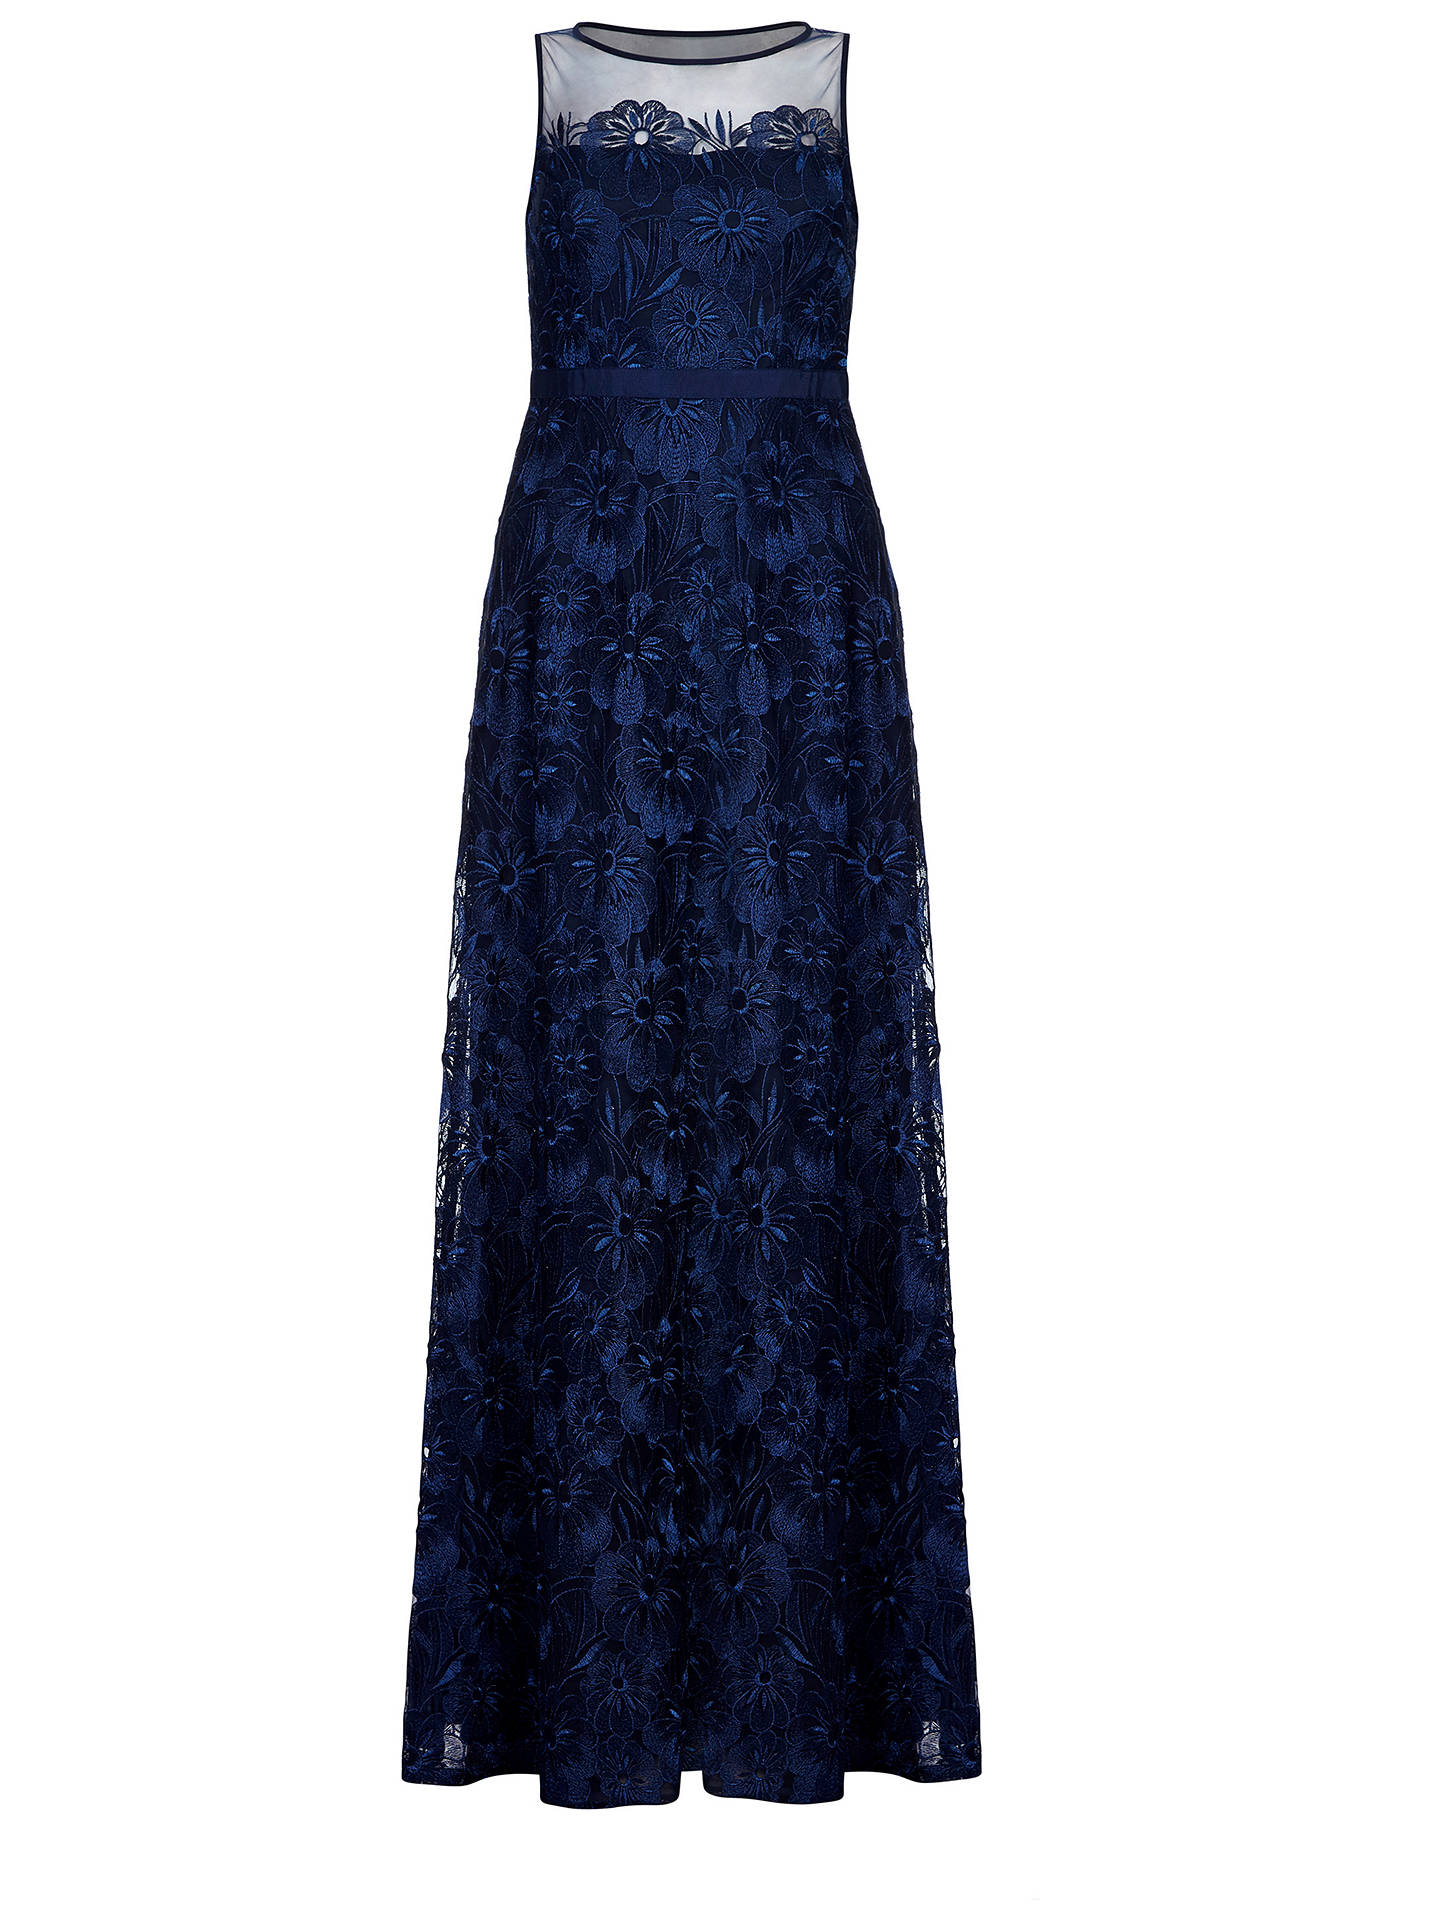 BuyAdrianna Papell Long Embroidered Dress, Deep Blue, 8 Online at johnlewis.com